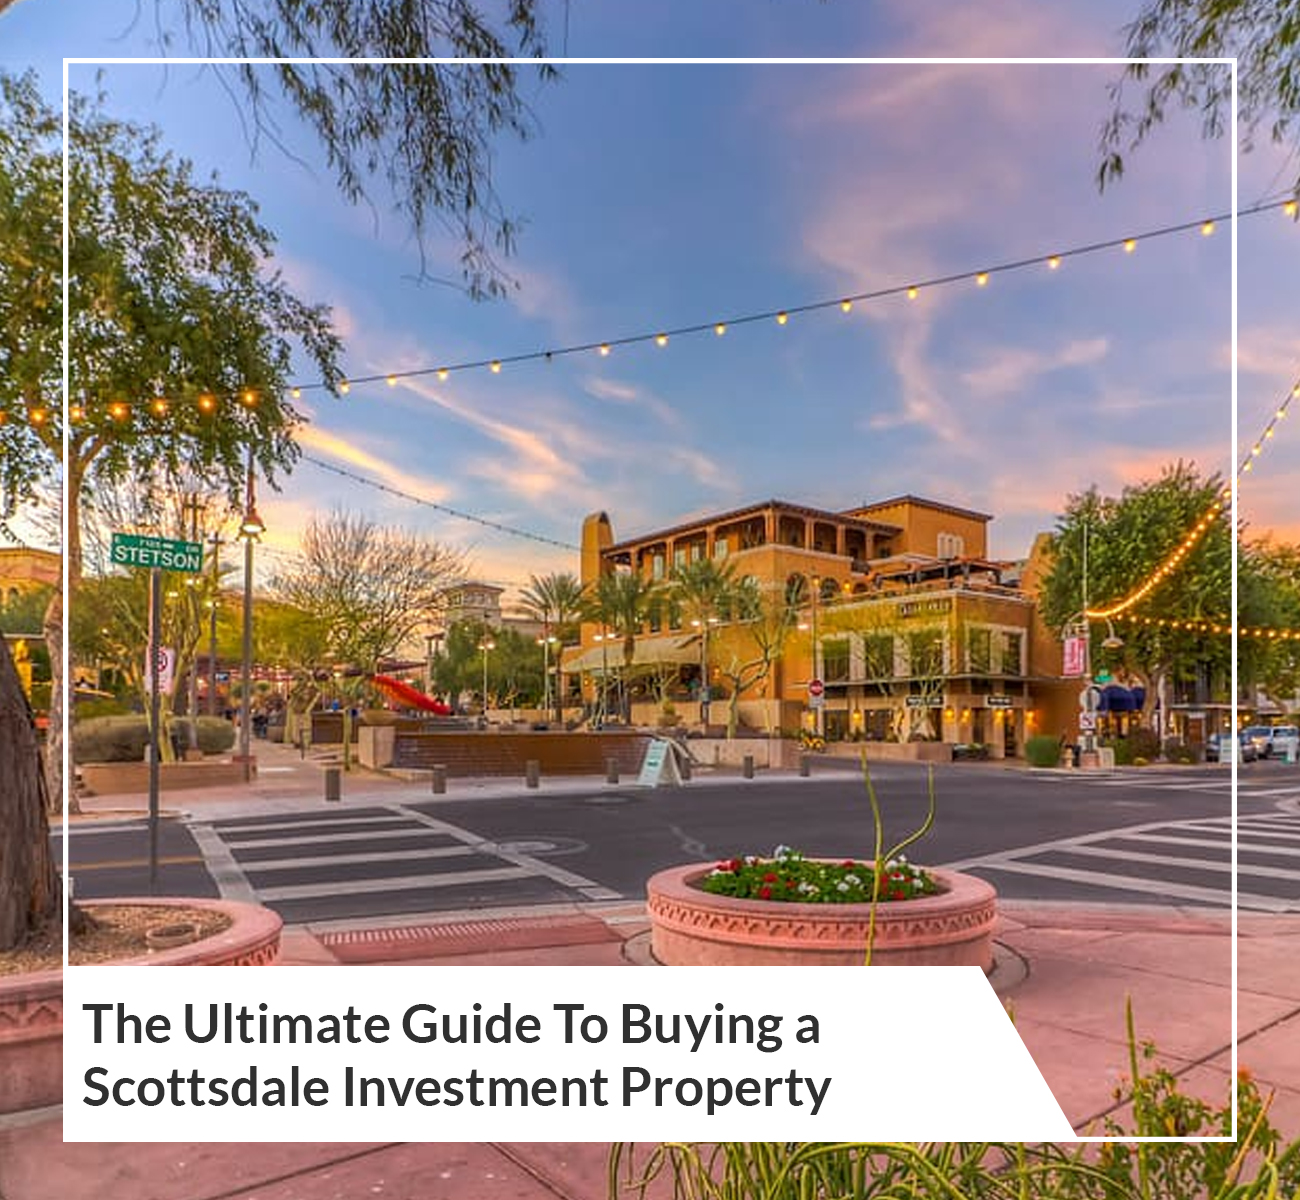 Guide to Buying a Scottsdale Investment Propert